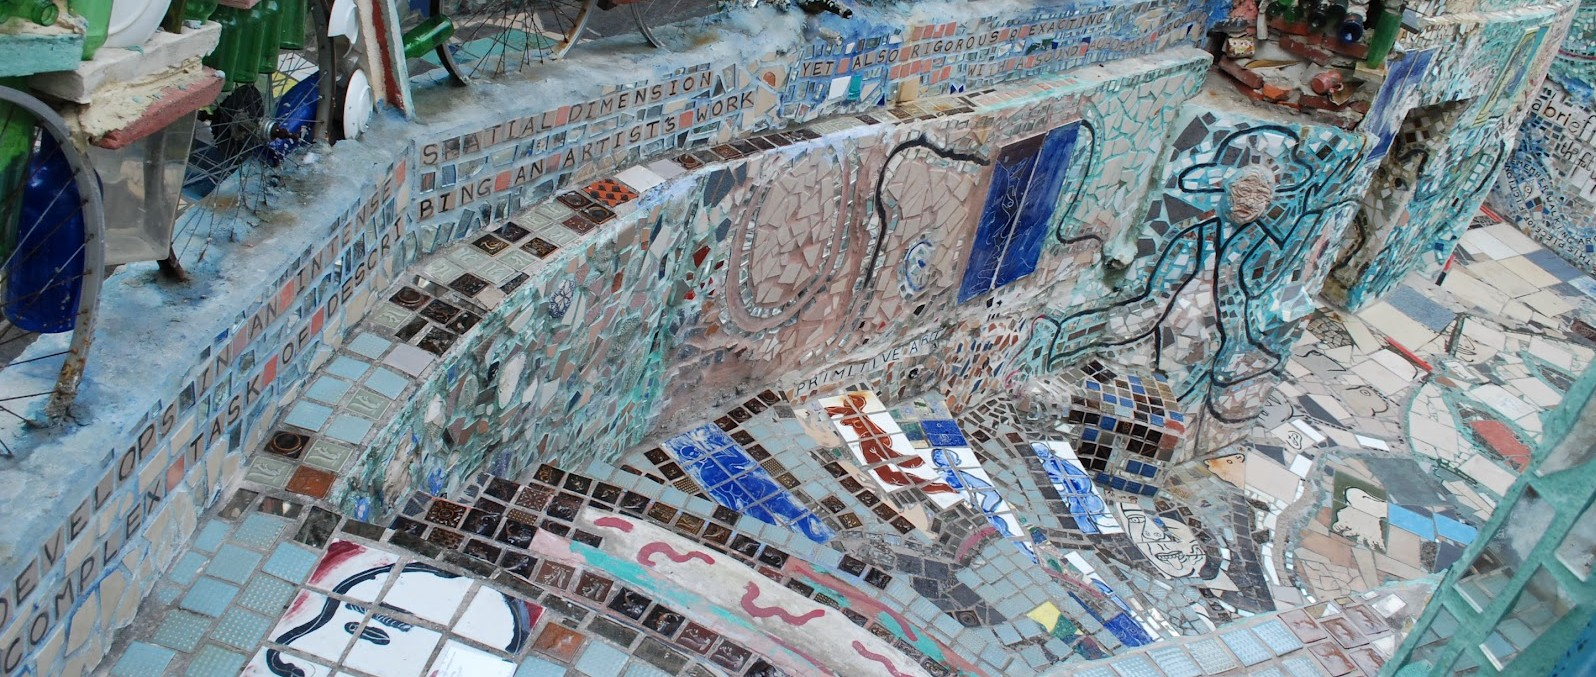 Philadelphia's Magic Gardens Main Image